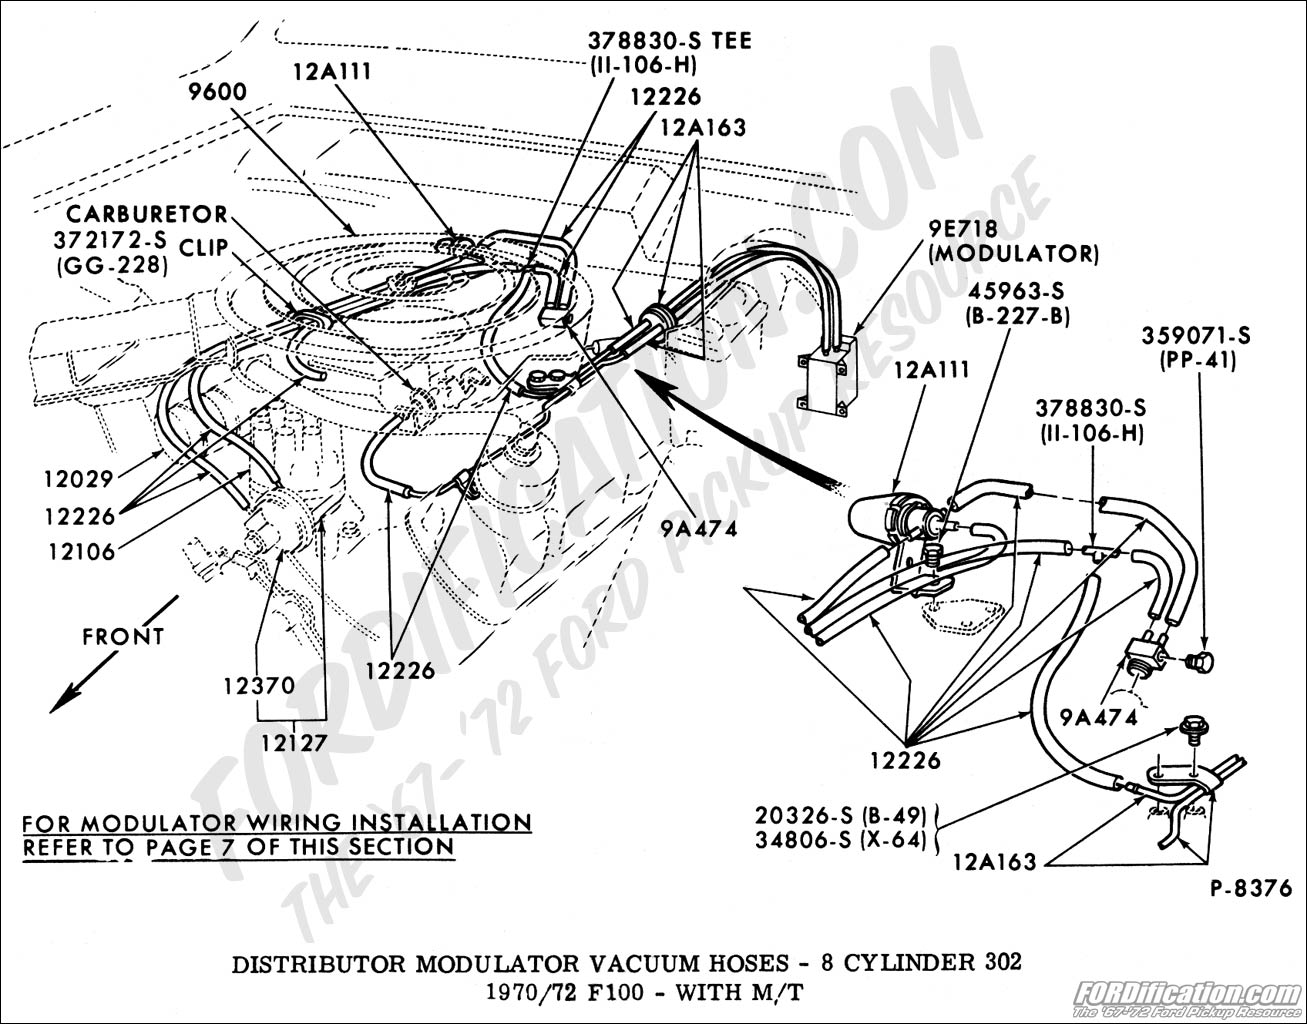 1966 Ford F100 Alternator Wiring Diagram Top Engine Fuse Truck For Images Gallery Technical Drawings And Schematics Section I